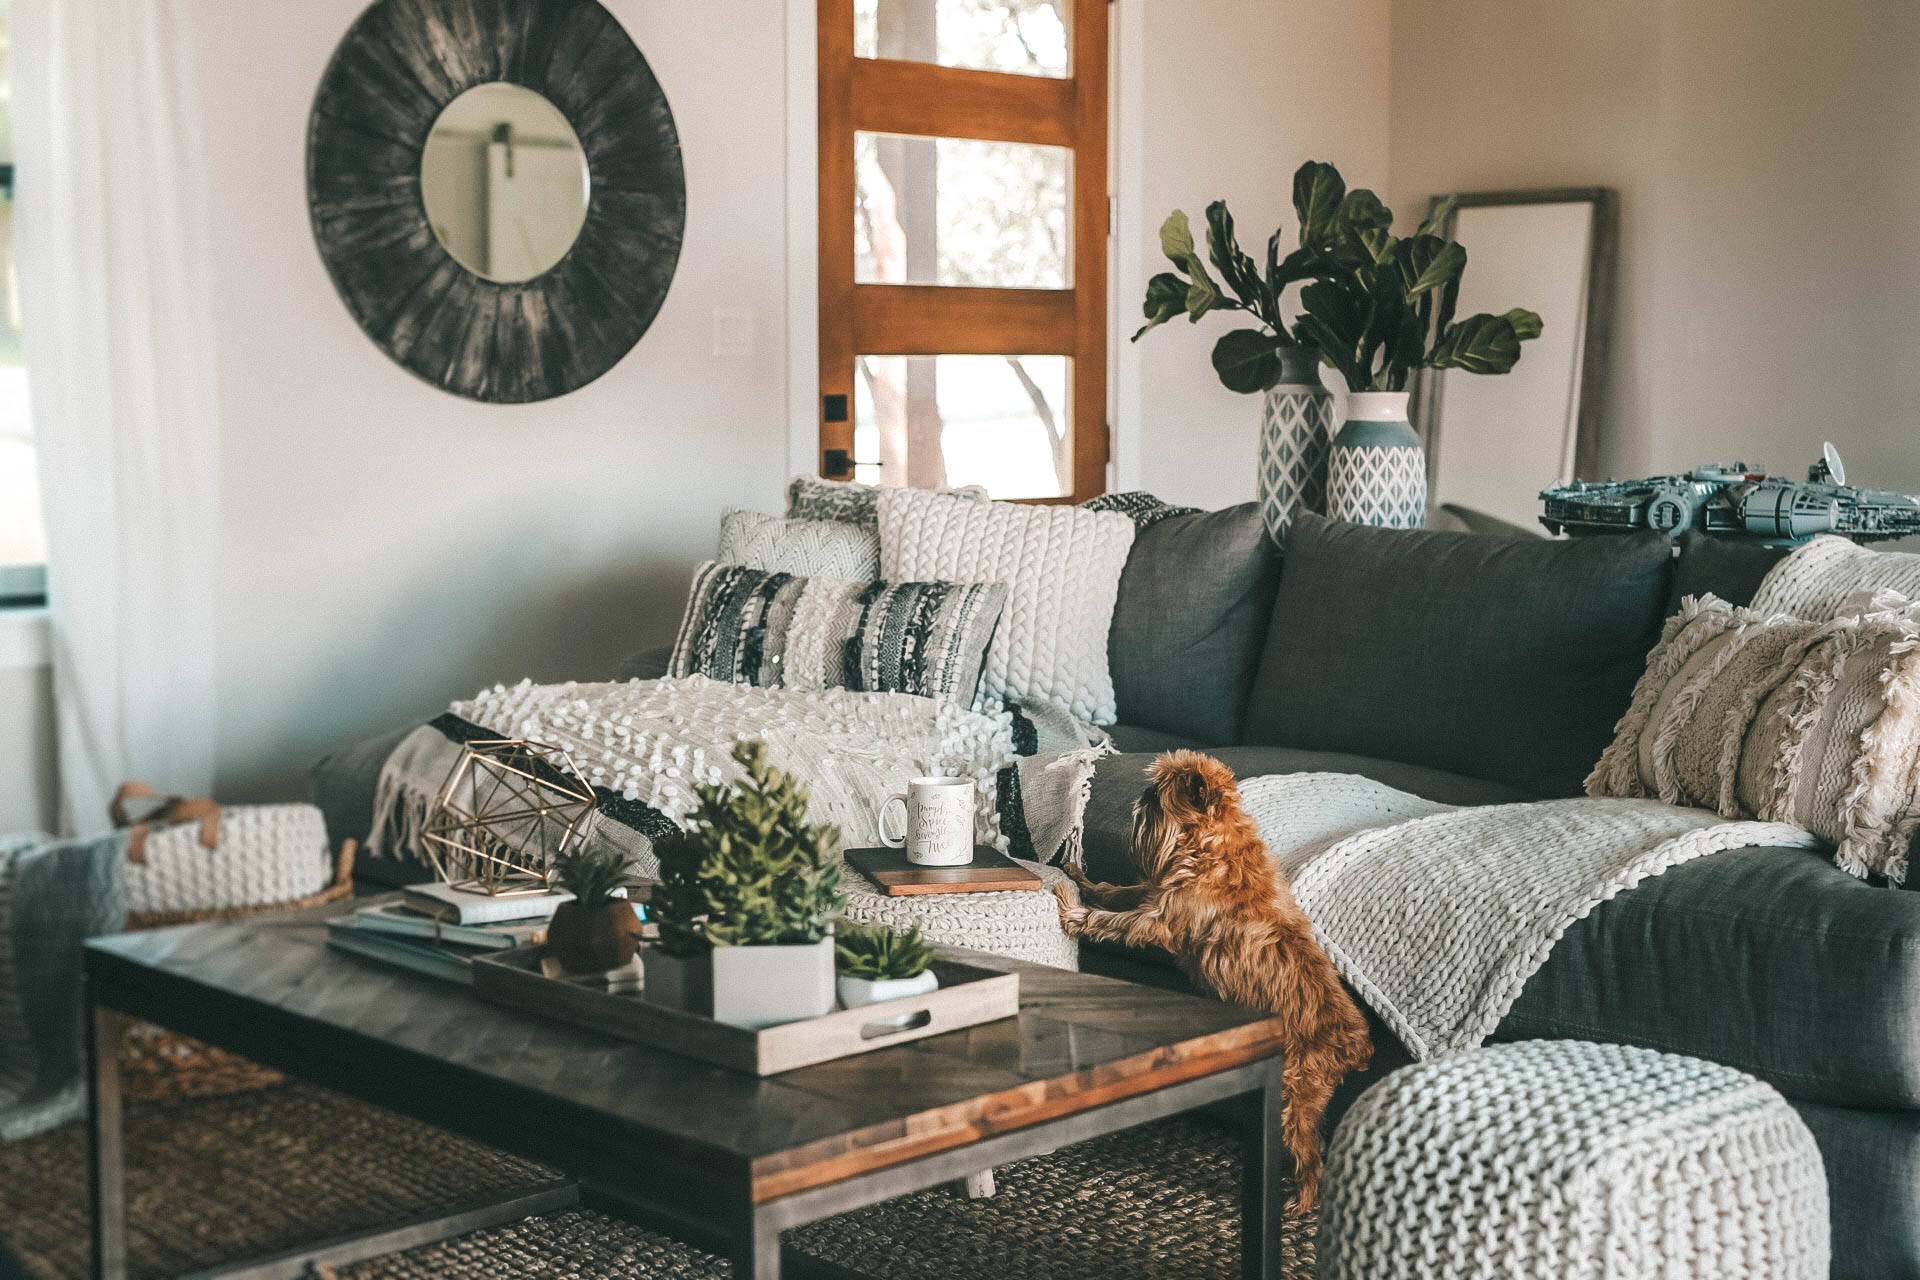 DTKAustin shares a sneak peek into her newly built home. She styled the modern farmhouse with Nordstrom Home Decor on a budget. - Fall Home Decor for a Cozier Home with Nordstrom Decor featured by popular Austin life and style blogger, Dressed to Kill